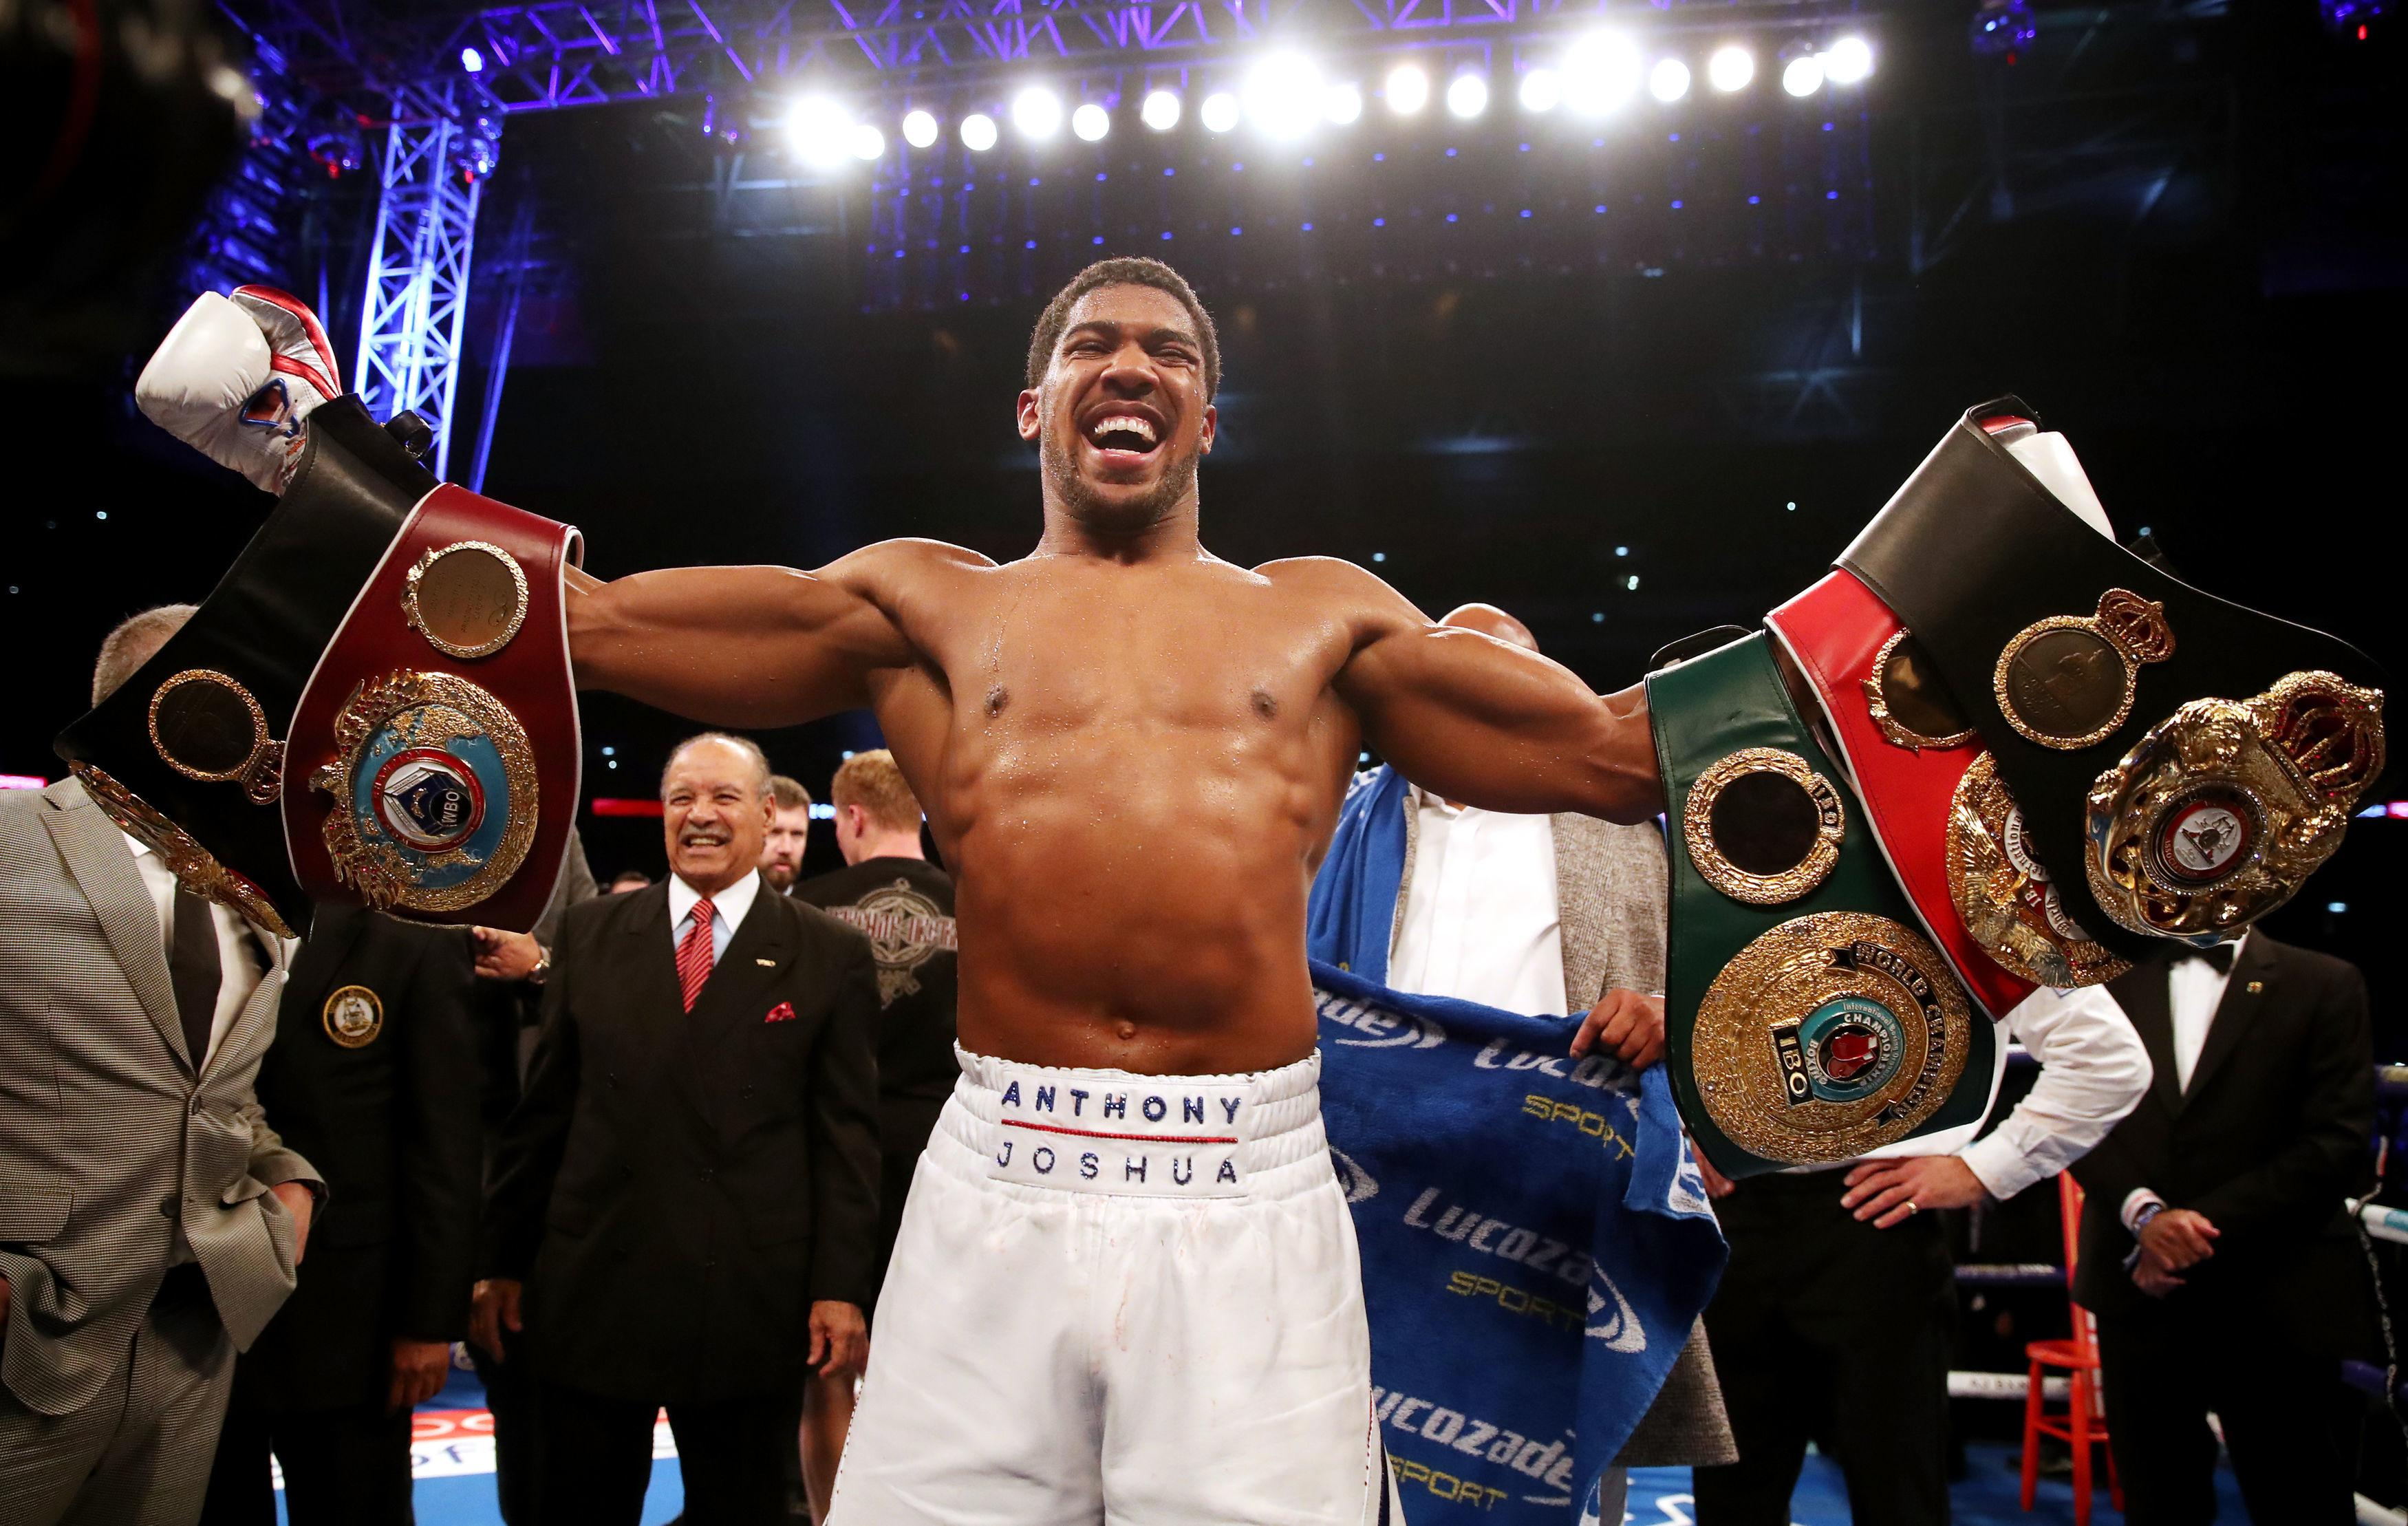 Anthony Joshua had some scary moments in the early rounds against Alexander Povetkin before securing another KO win